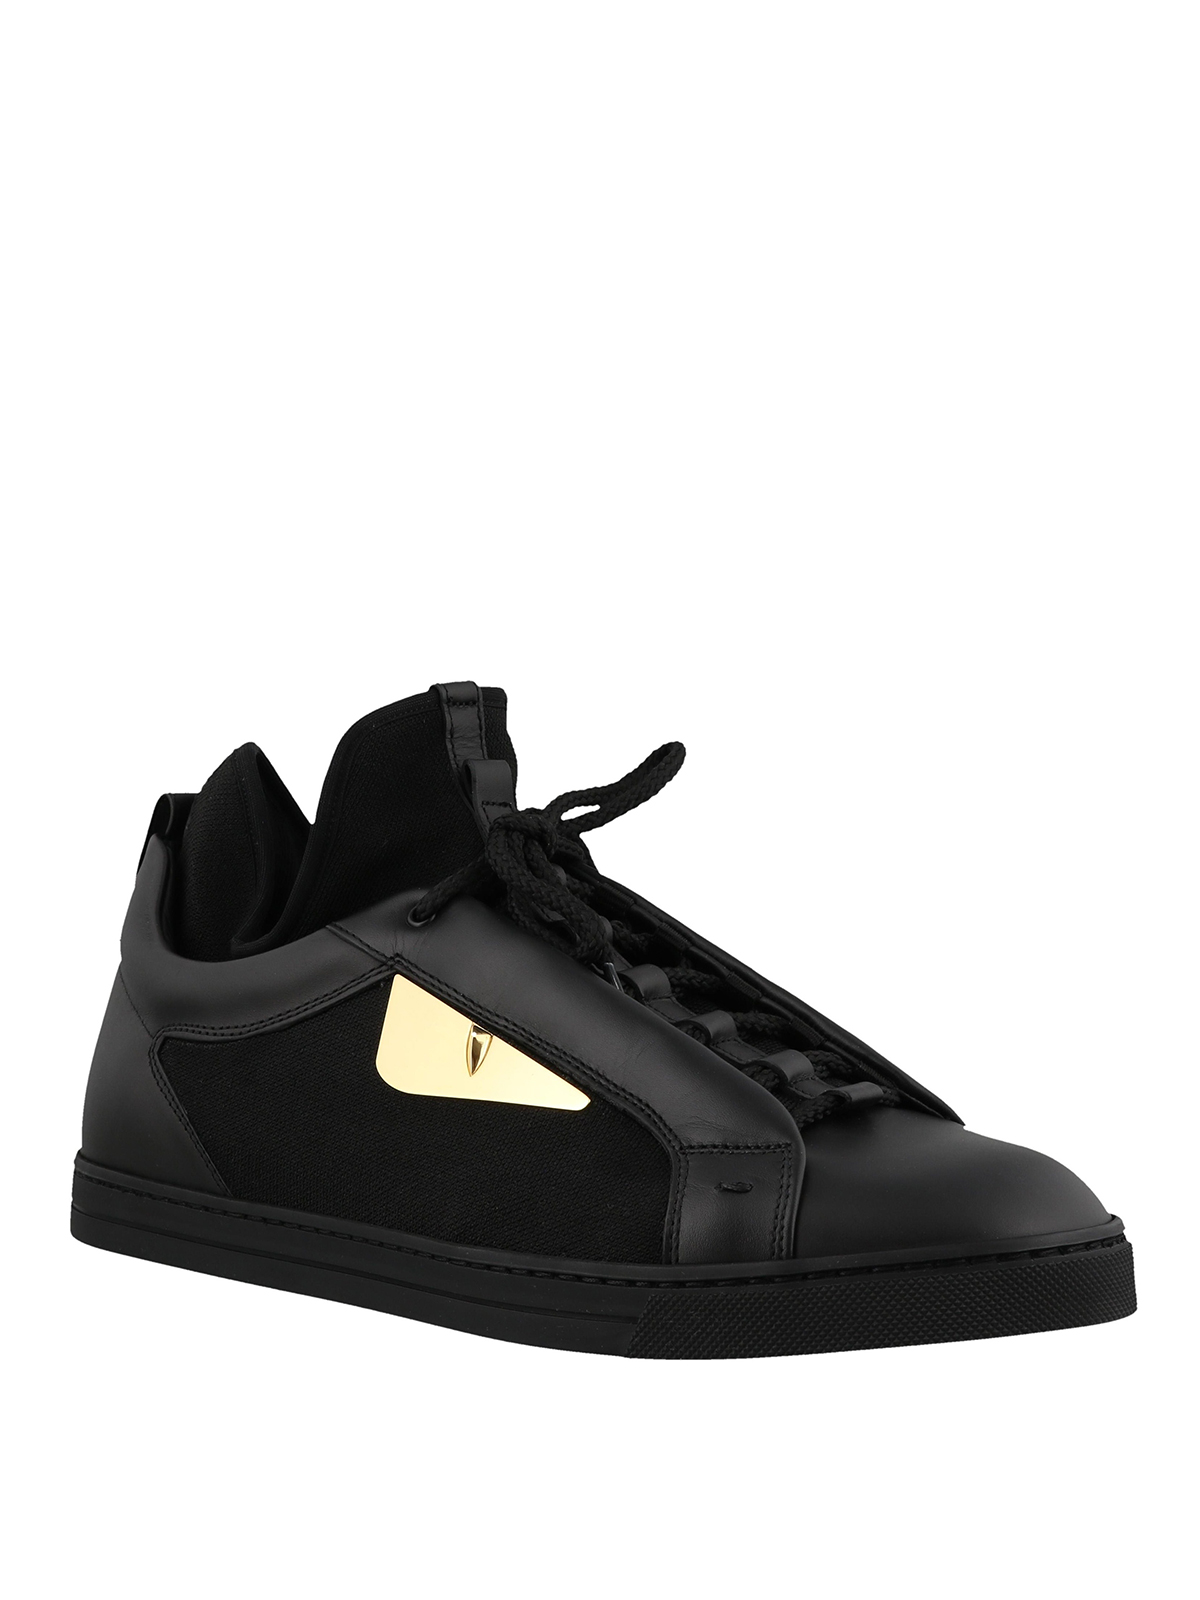 3ce9890dba FENDI  trainers online - Bag Bugs leather and knit fabric sneakers